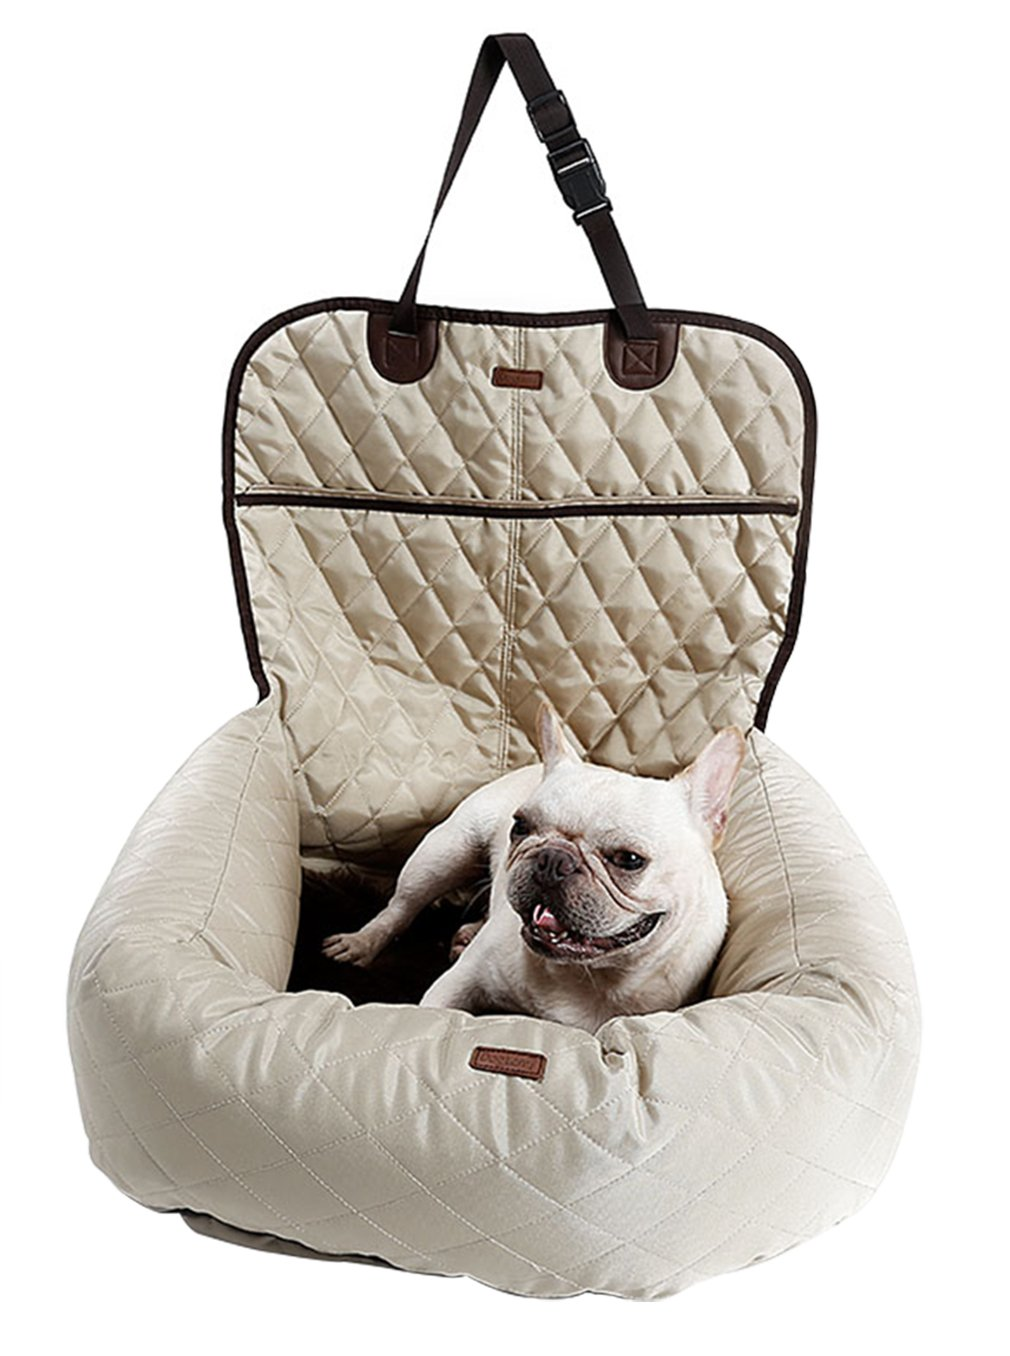 La Vogue Car Seat Cover For Pets Fits Bucket Seats Or A